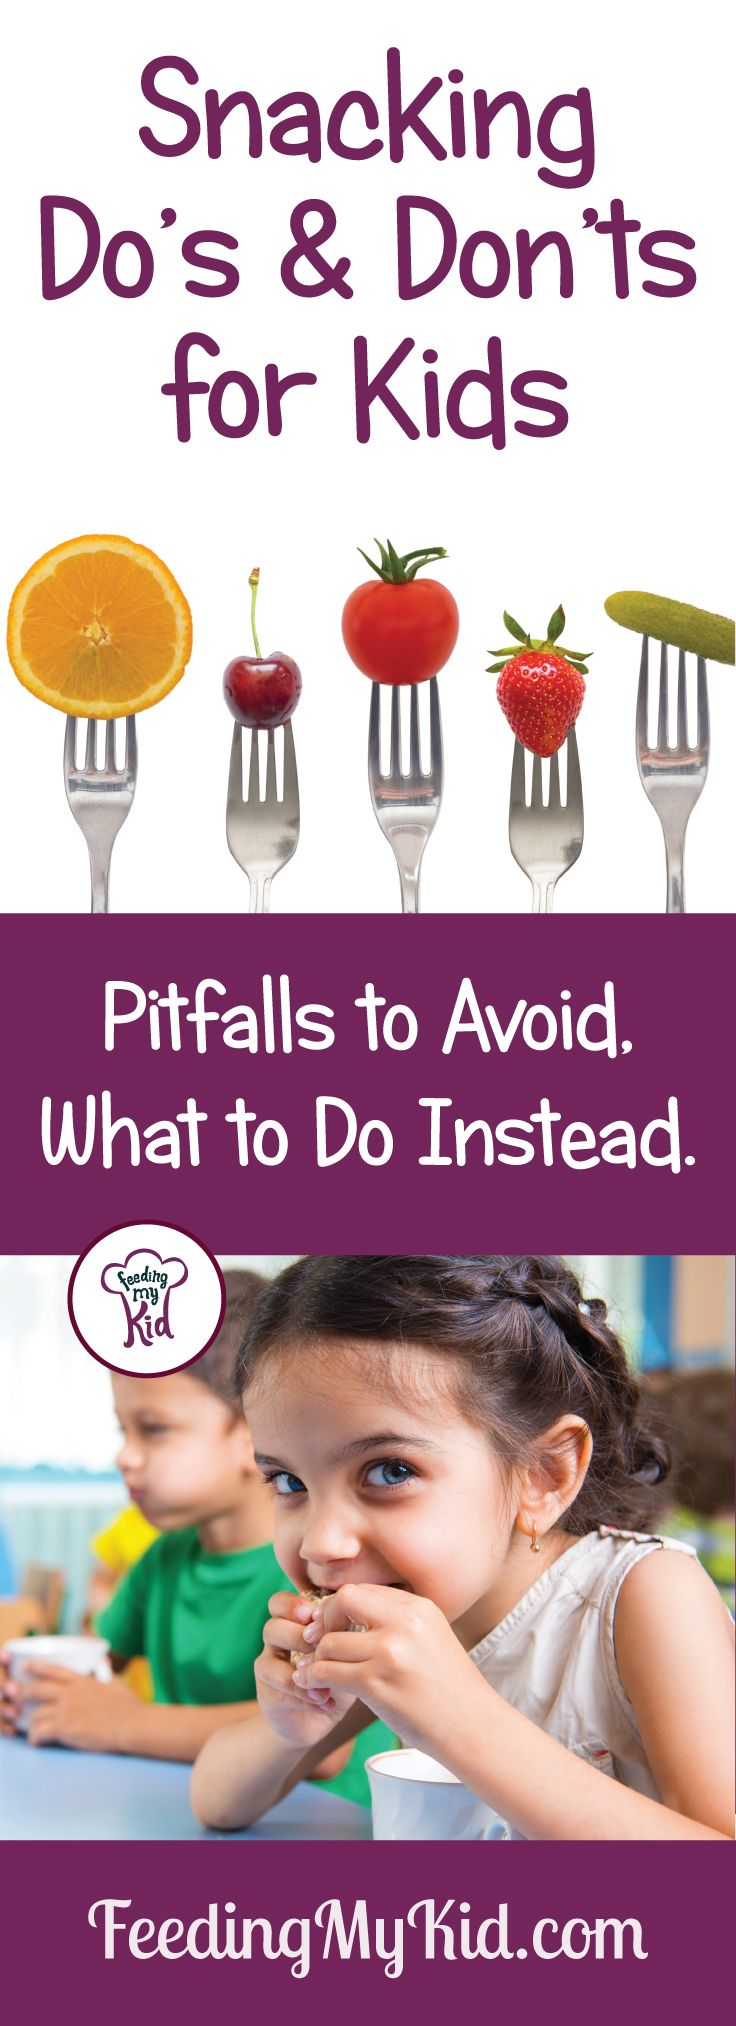 Snacking Do's and Don'ts for Kids in 2020 Healthy diet